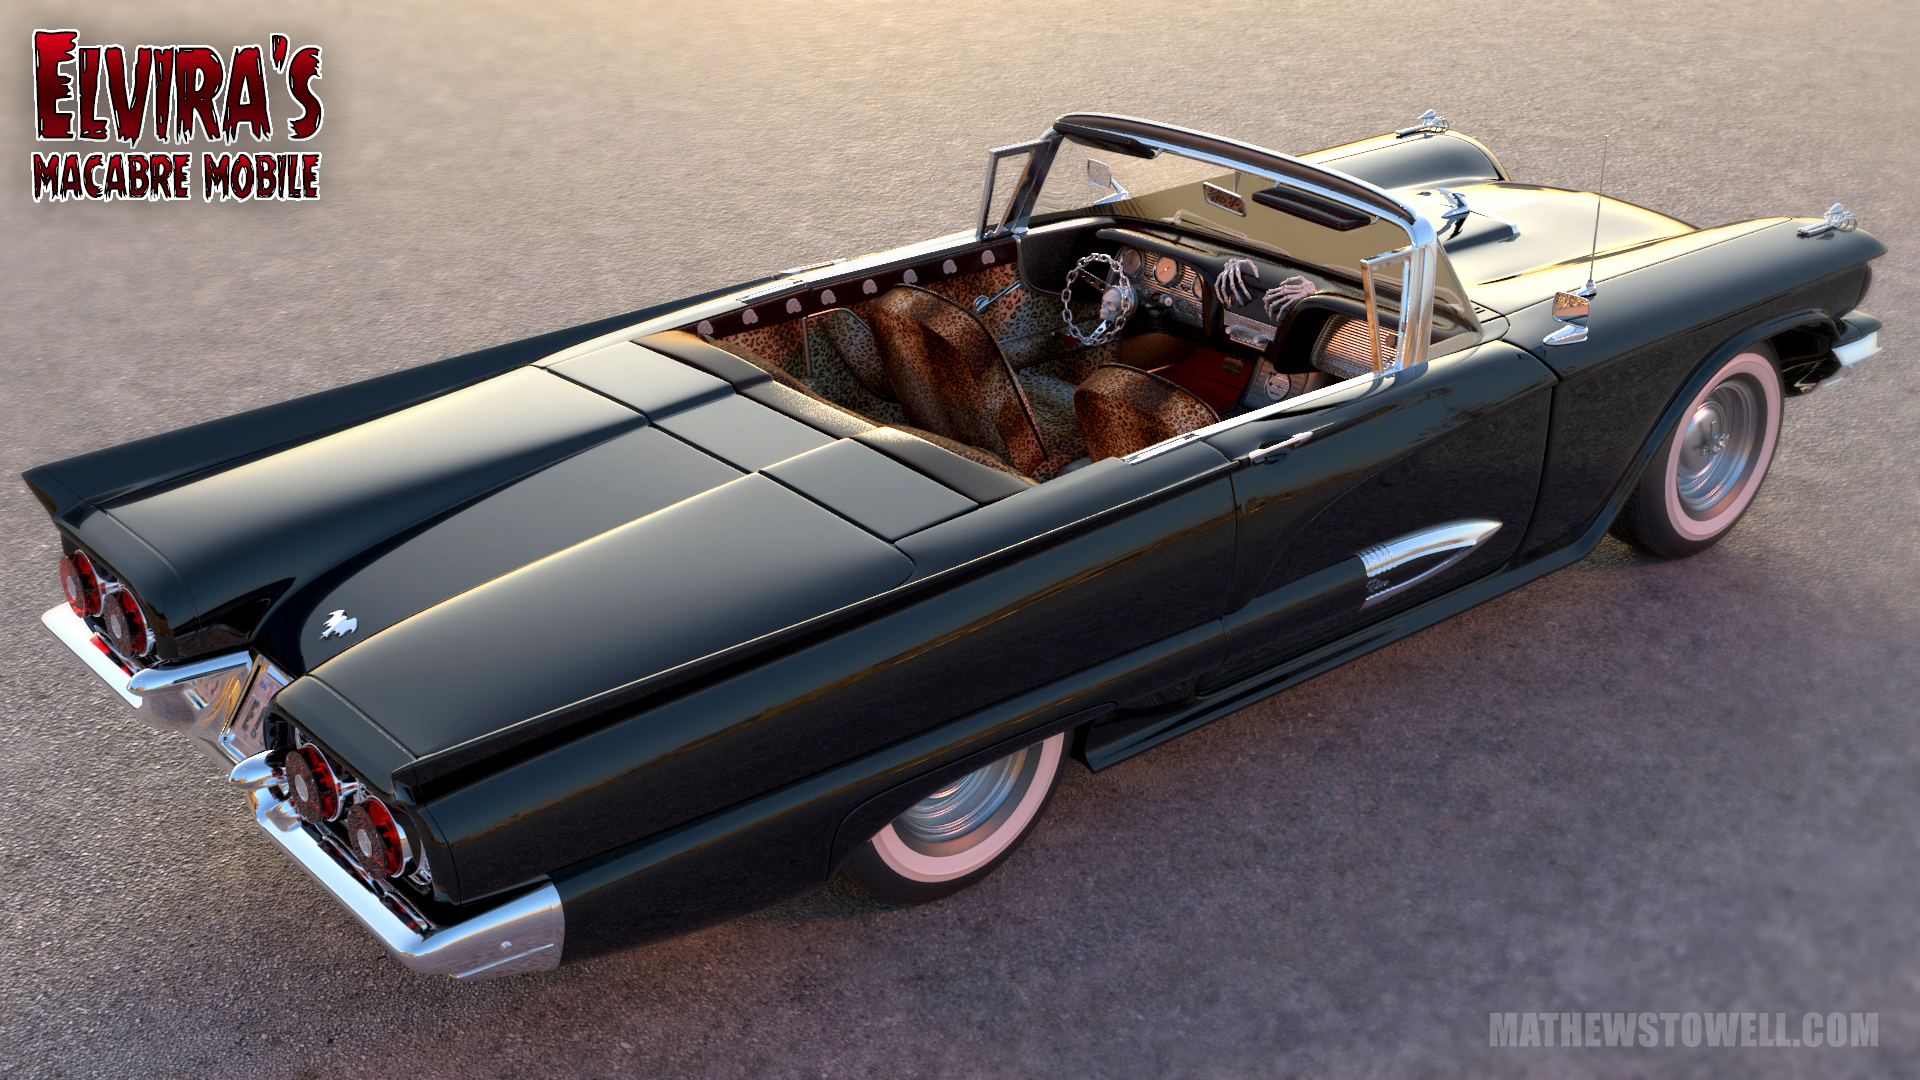 Elviras_car_side_3ds_max_vray.jpg